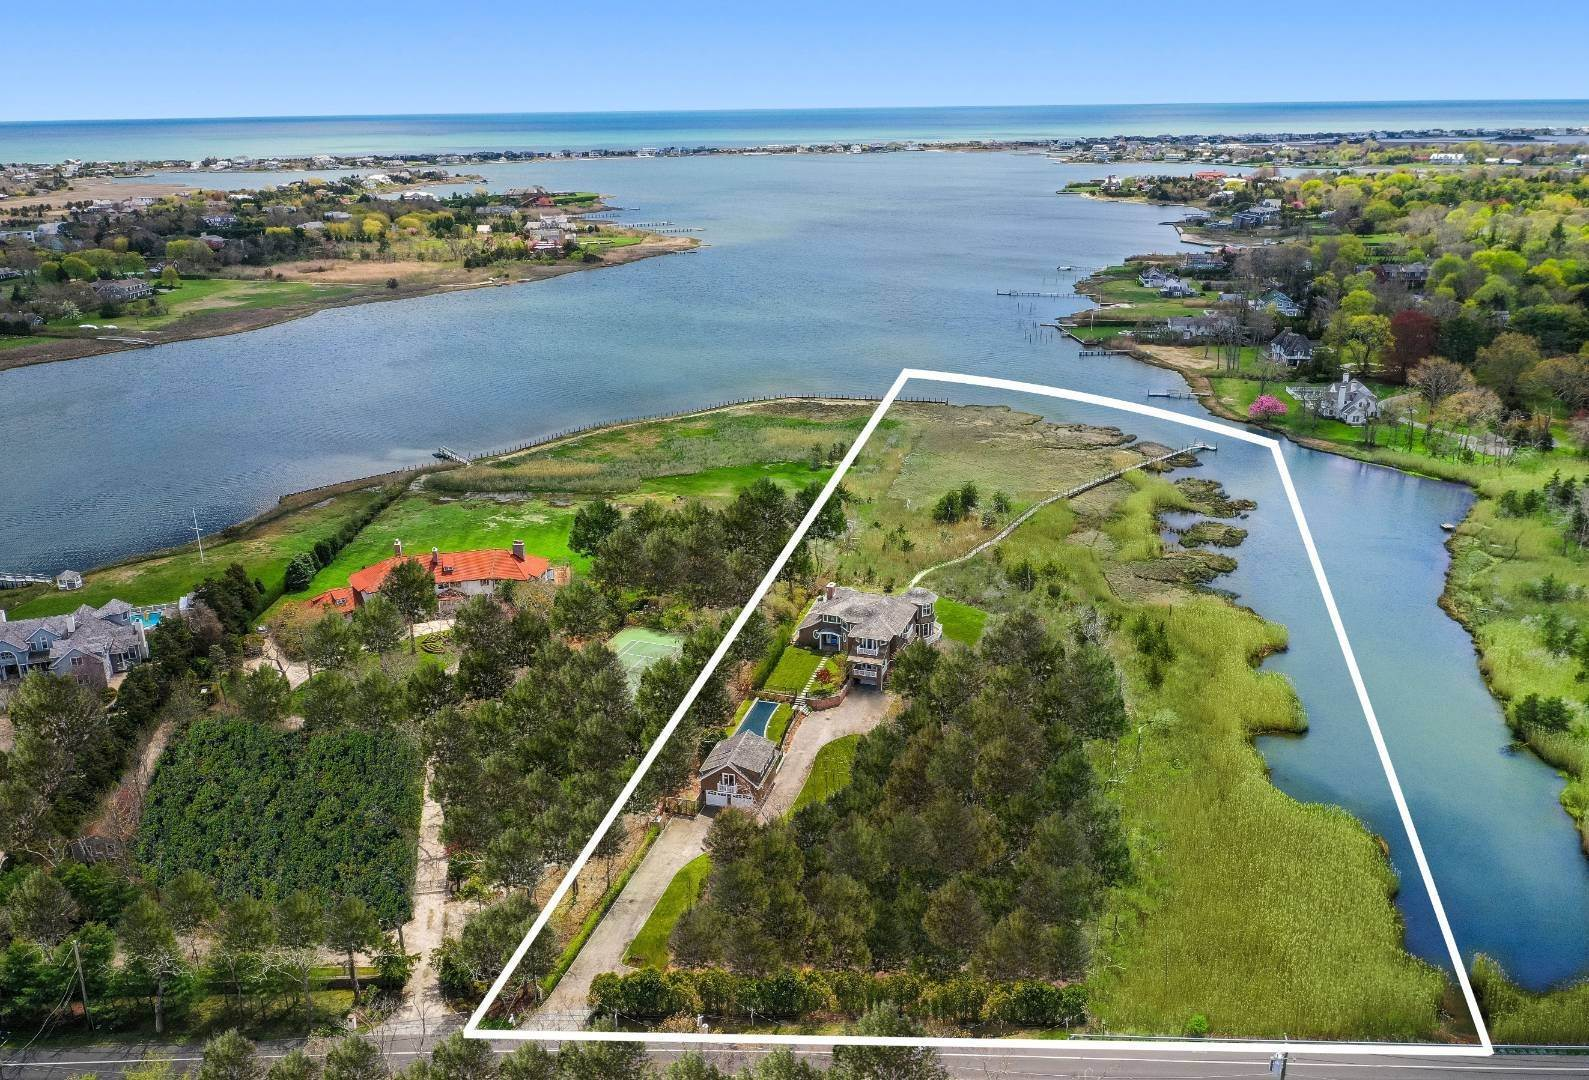 Single Family Home for Sale at One Of A Kind Spectacular And Fully Equipped Waterfront Estate 757 Montauk Highway, Quiogue, NY 11978